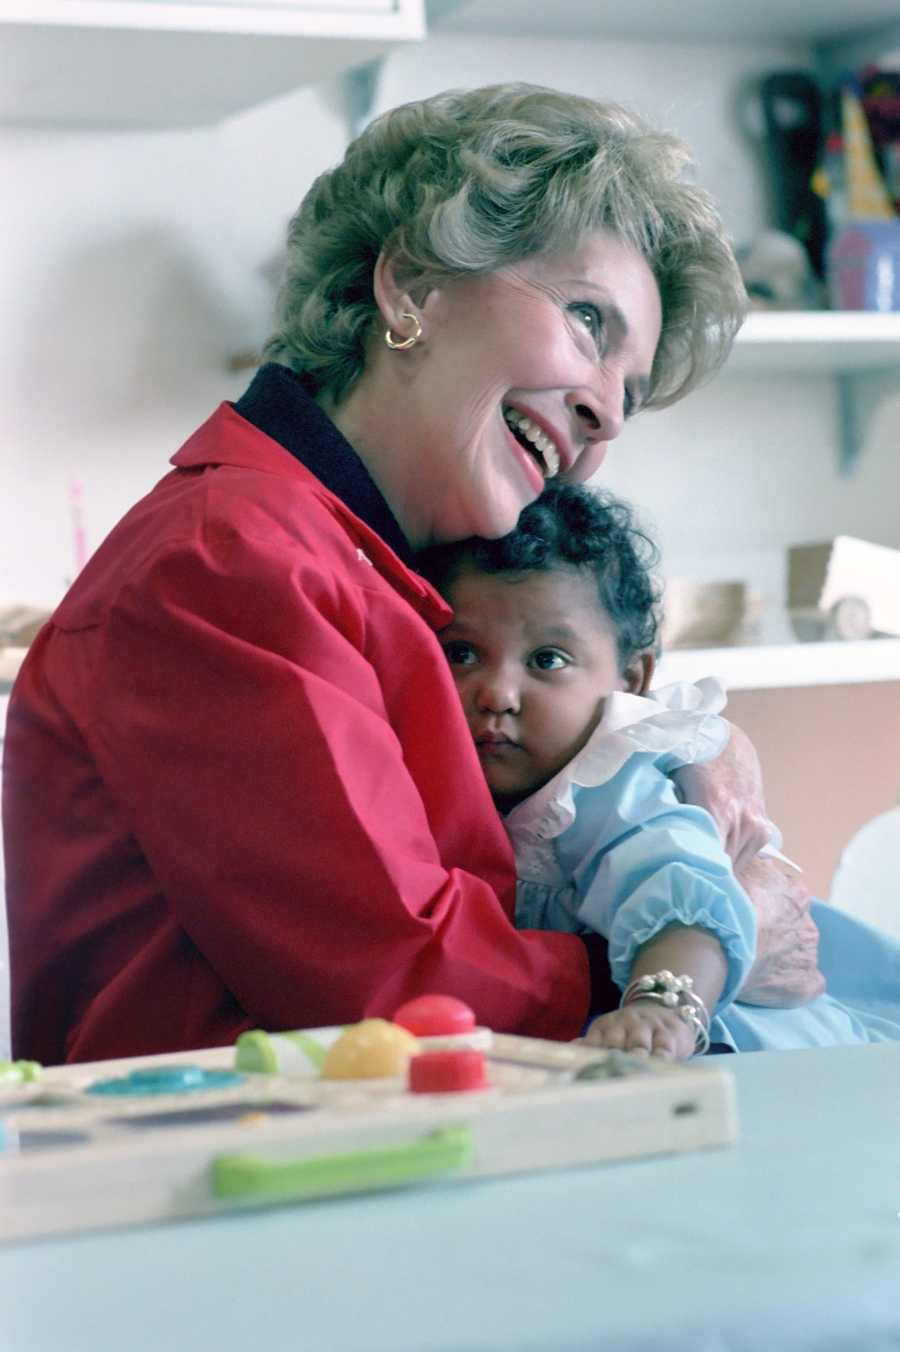 First Lady Nancy Reagan visits Columbia Presbyterian Medical Center as part of her foster grandparent program. (Oct. 27, 1982)